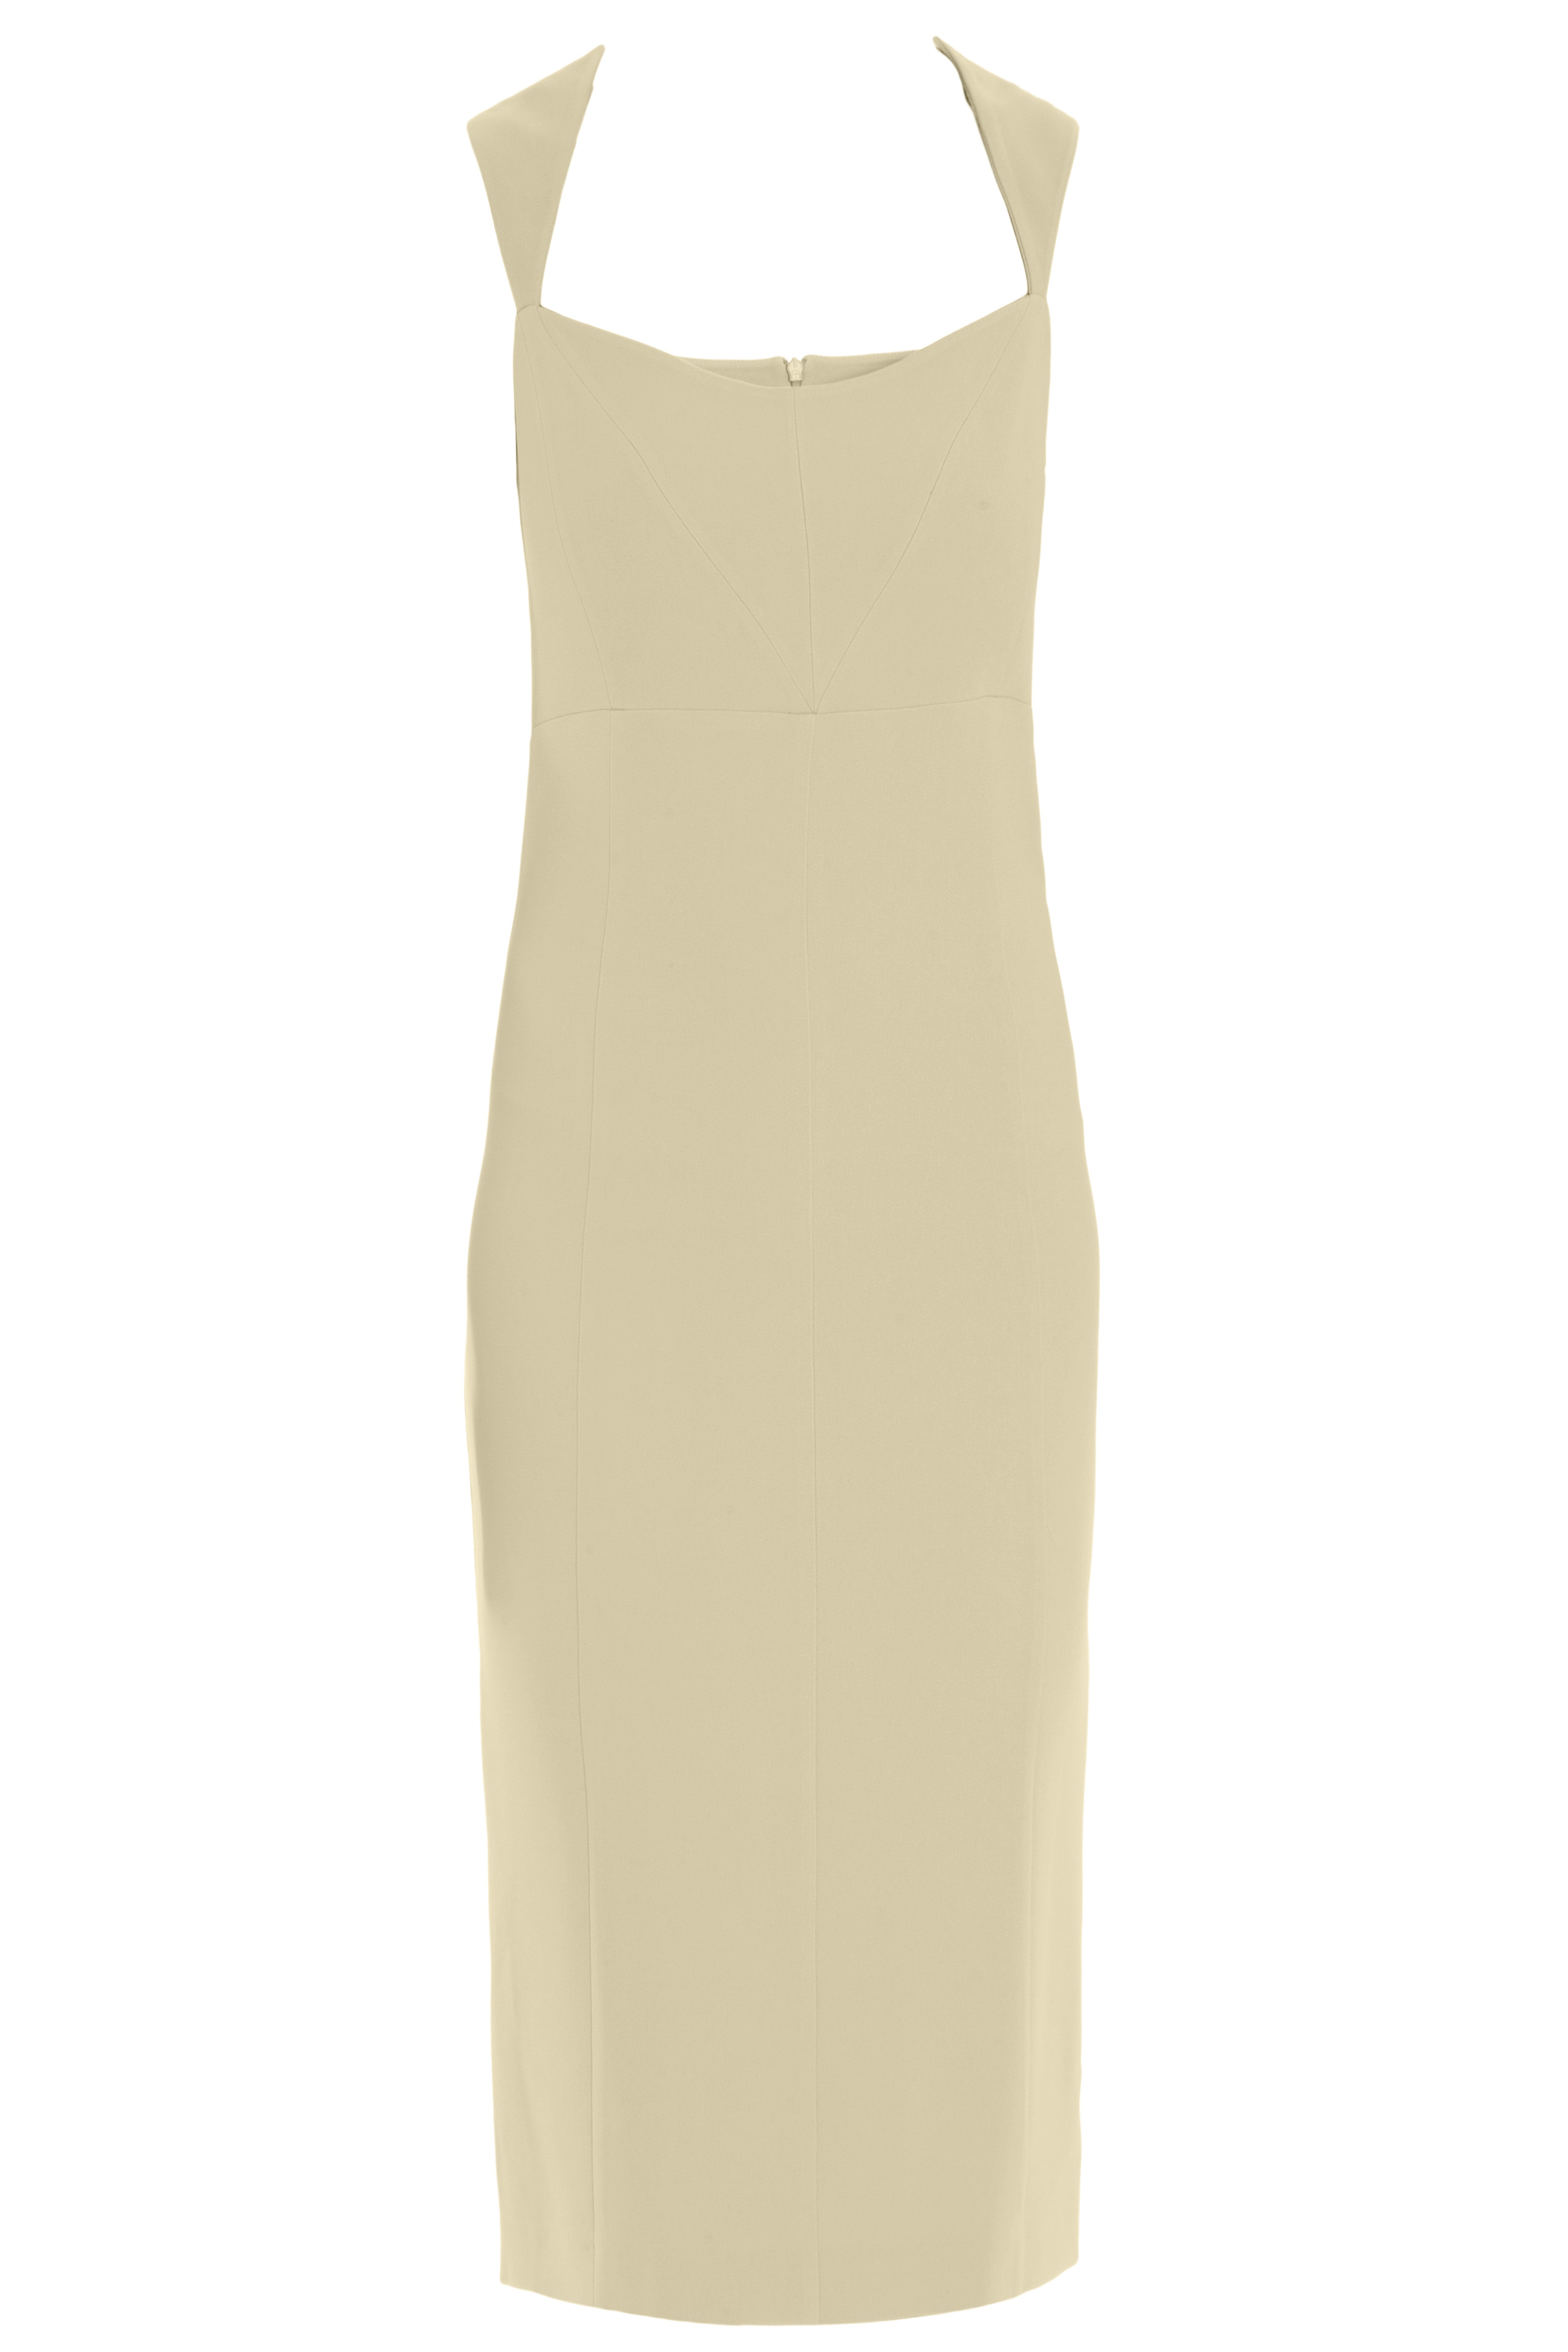 Lyst Safiyaa Wide Strap Cocktail Dress In Yellow